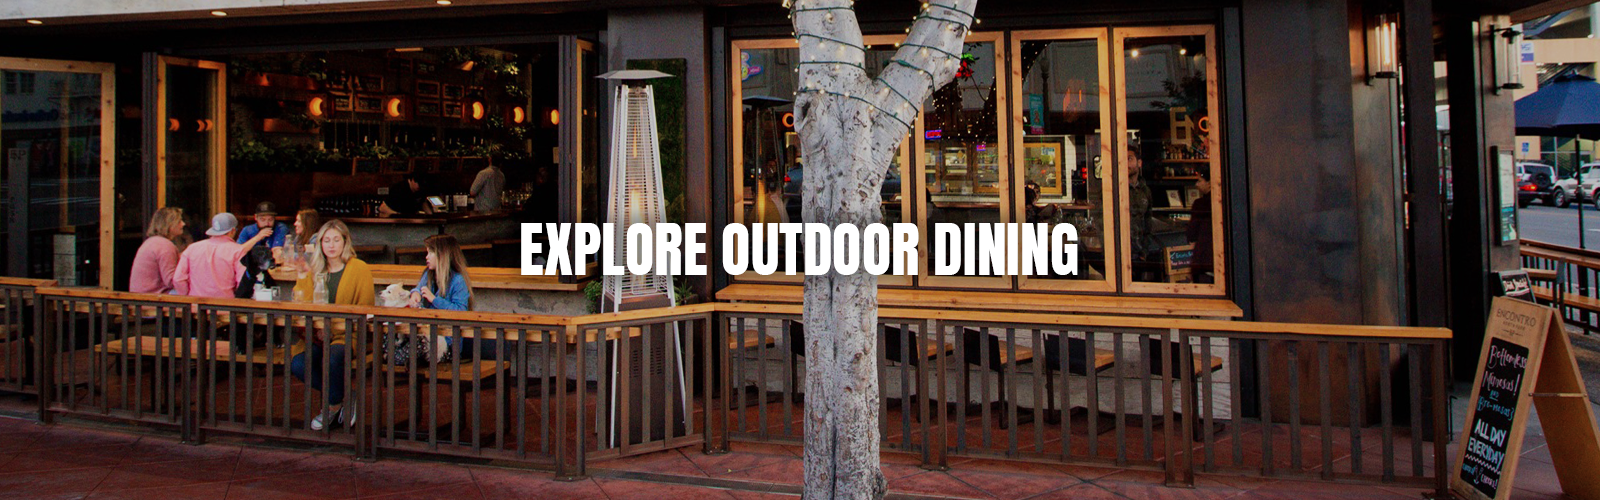 Explore Outdoor Dining